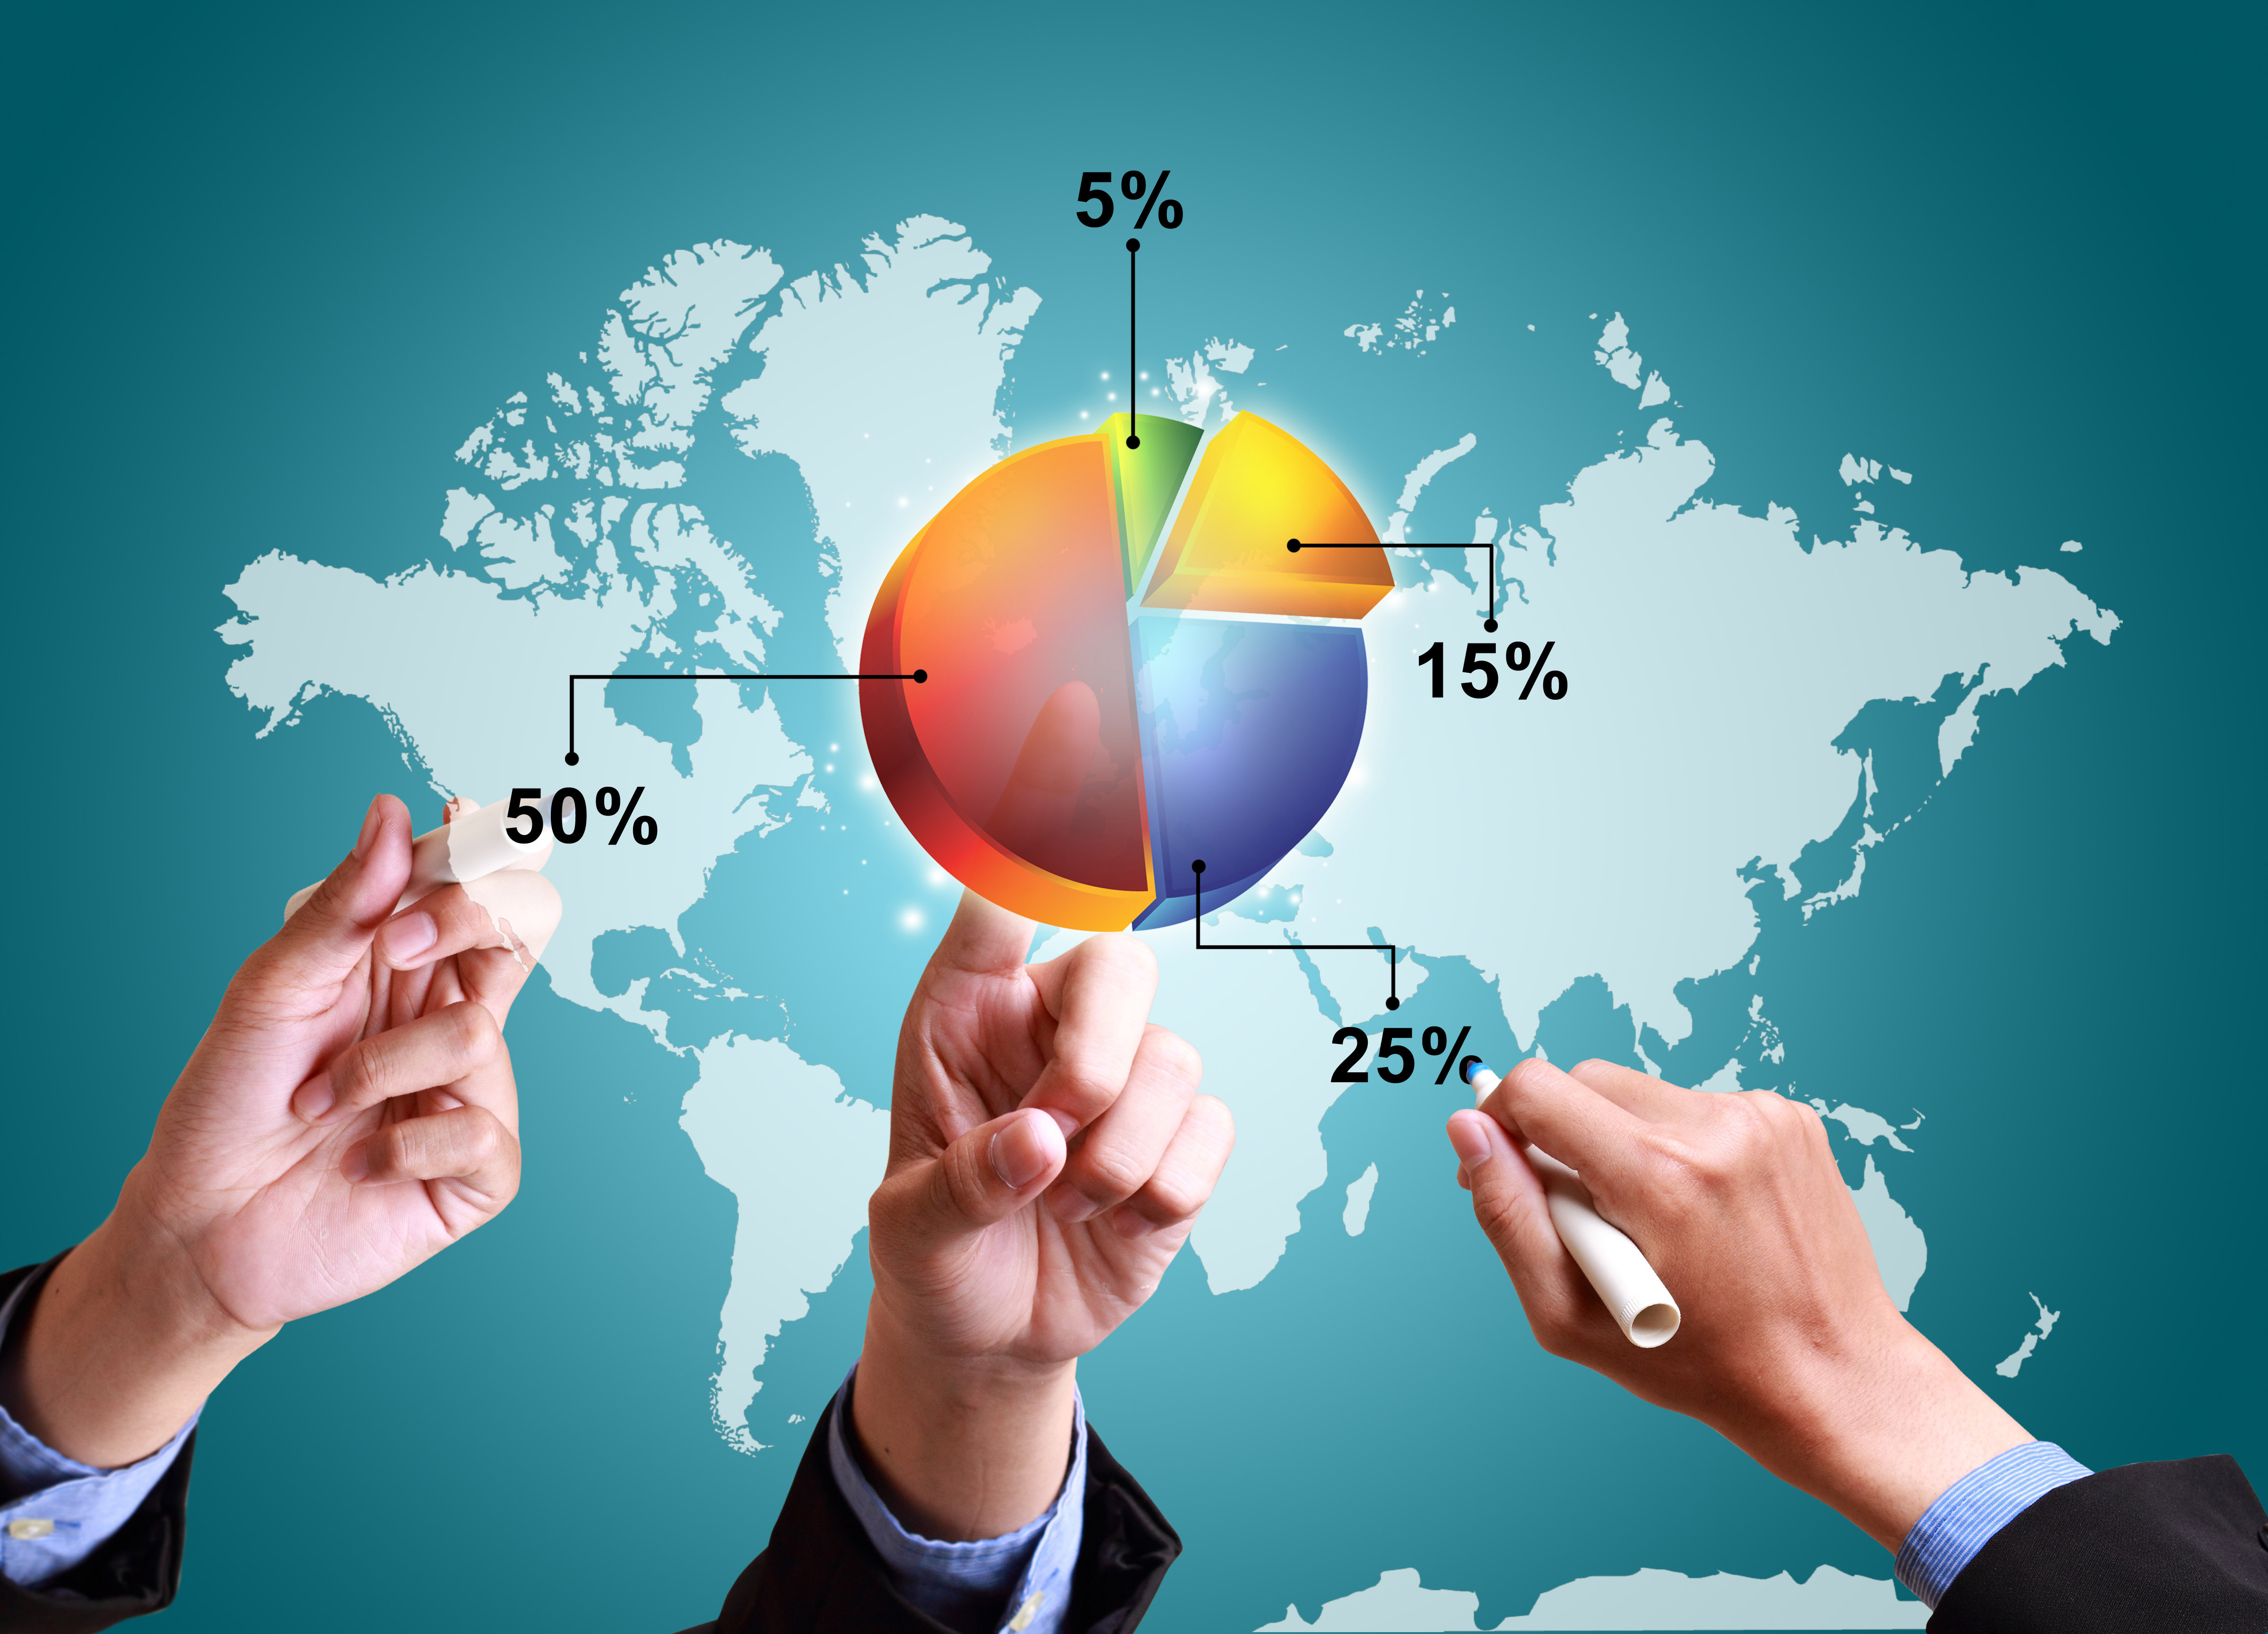 bda0a28ca UK businesses look to new markets at home and abroad